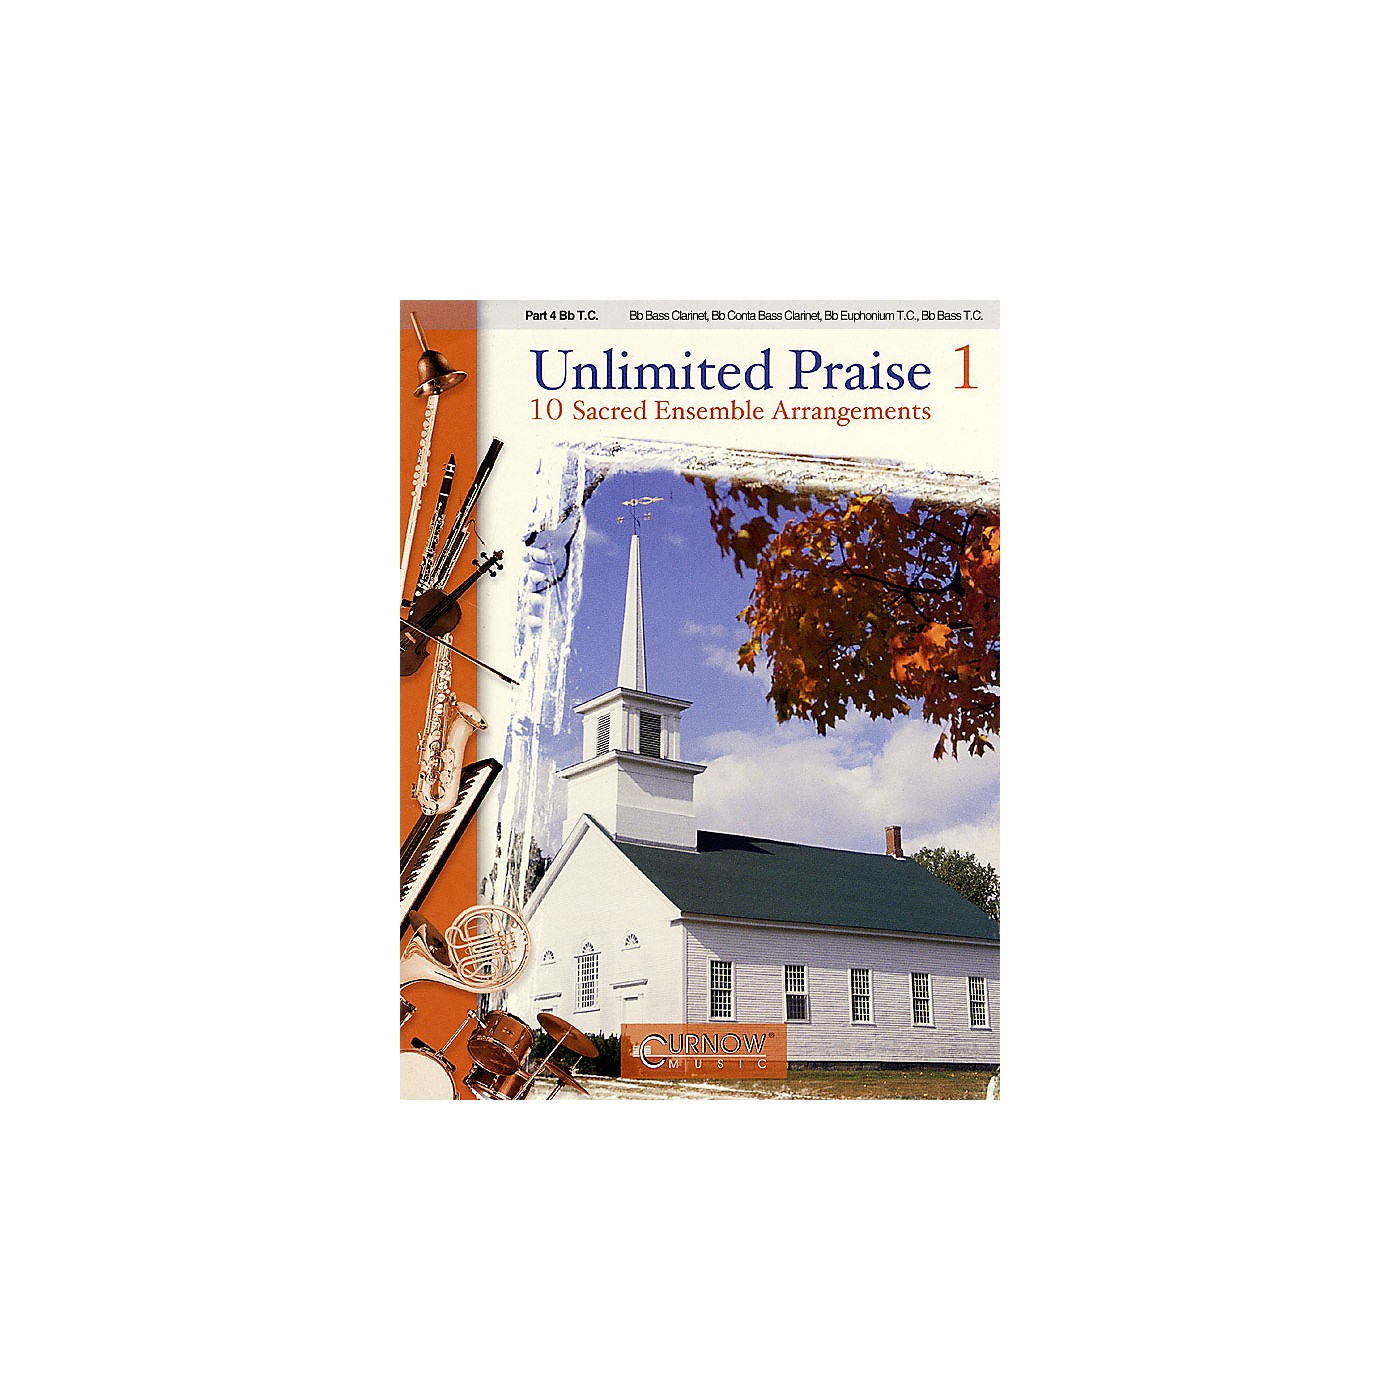 Curnow Music Unlimited Praise (Part 4 in Bb (Treble Clef)) Concert Band Level 2-4 thumbnail